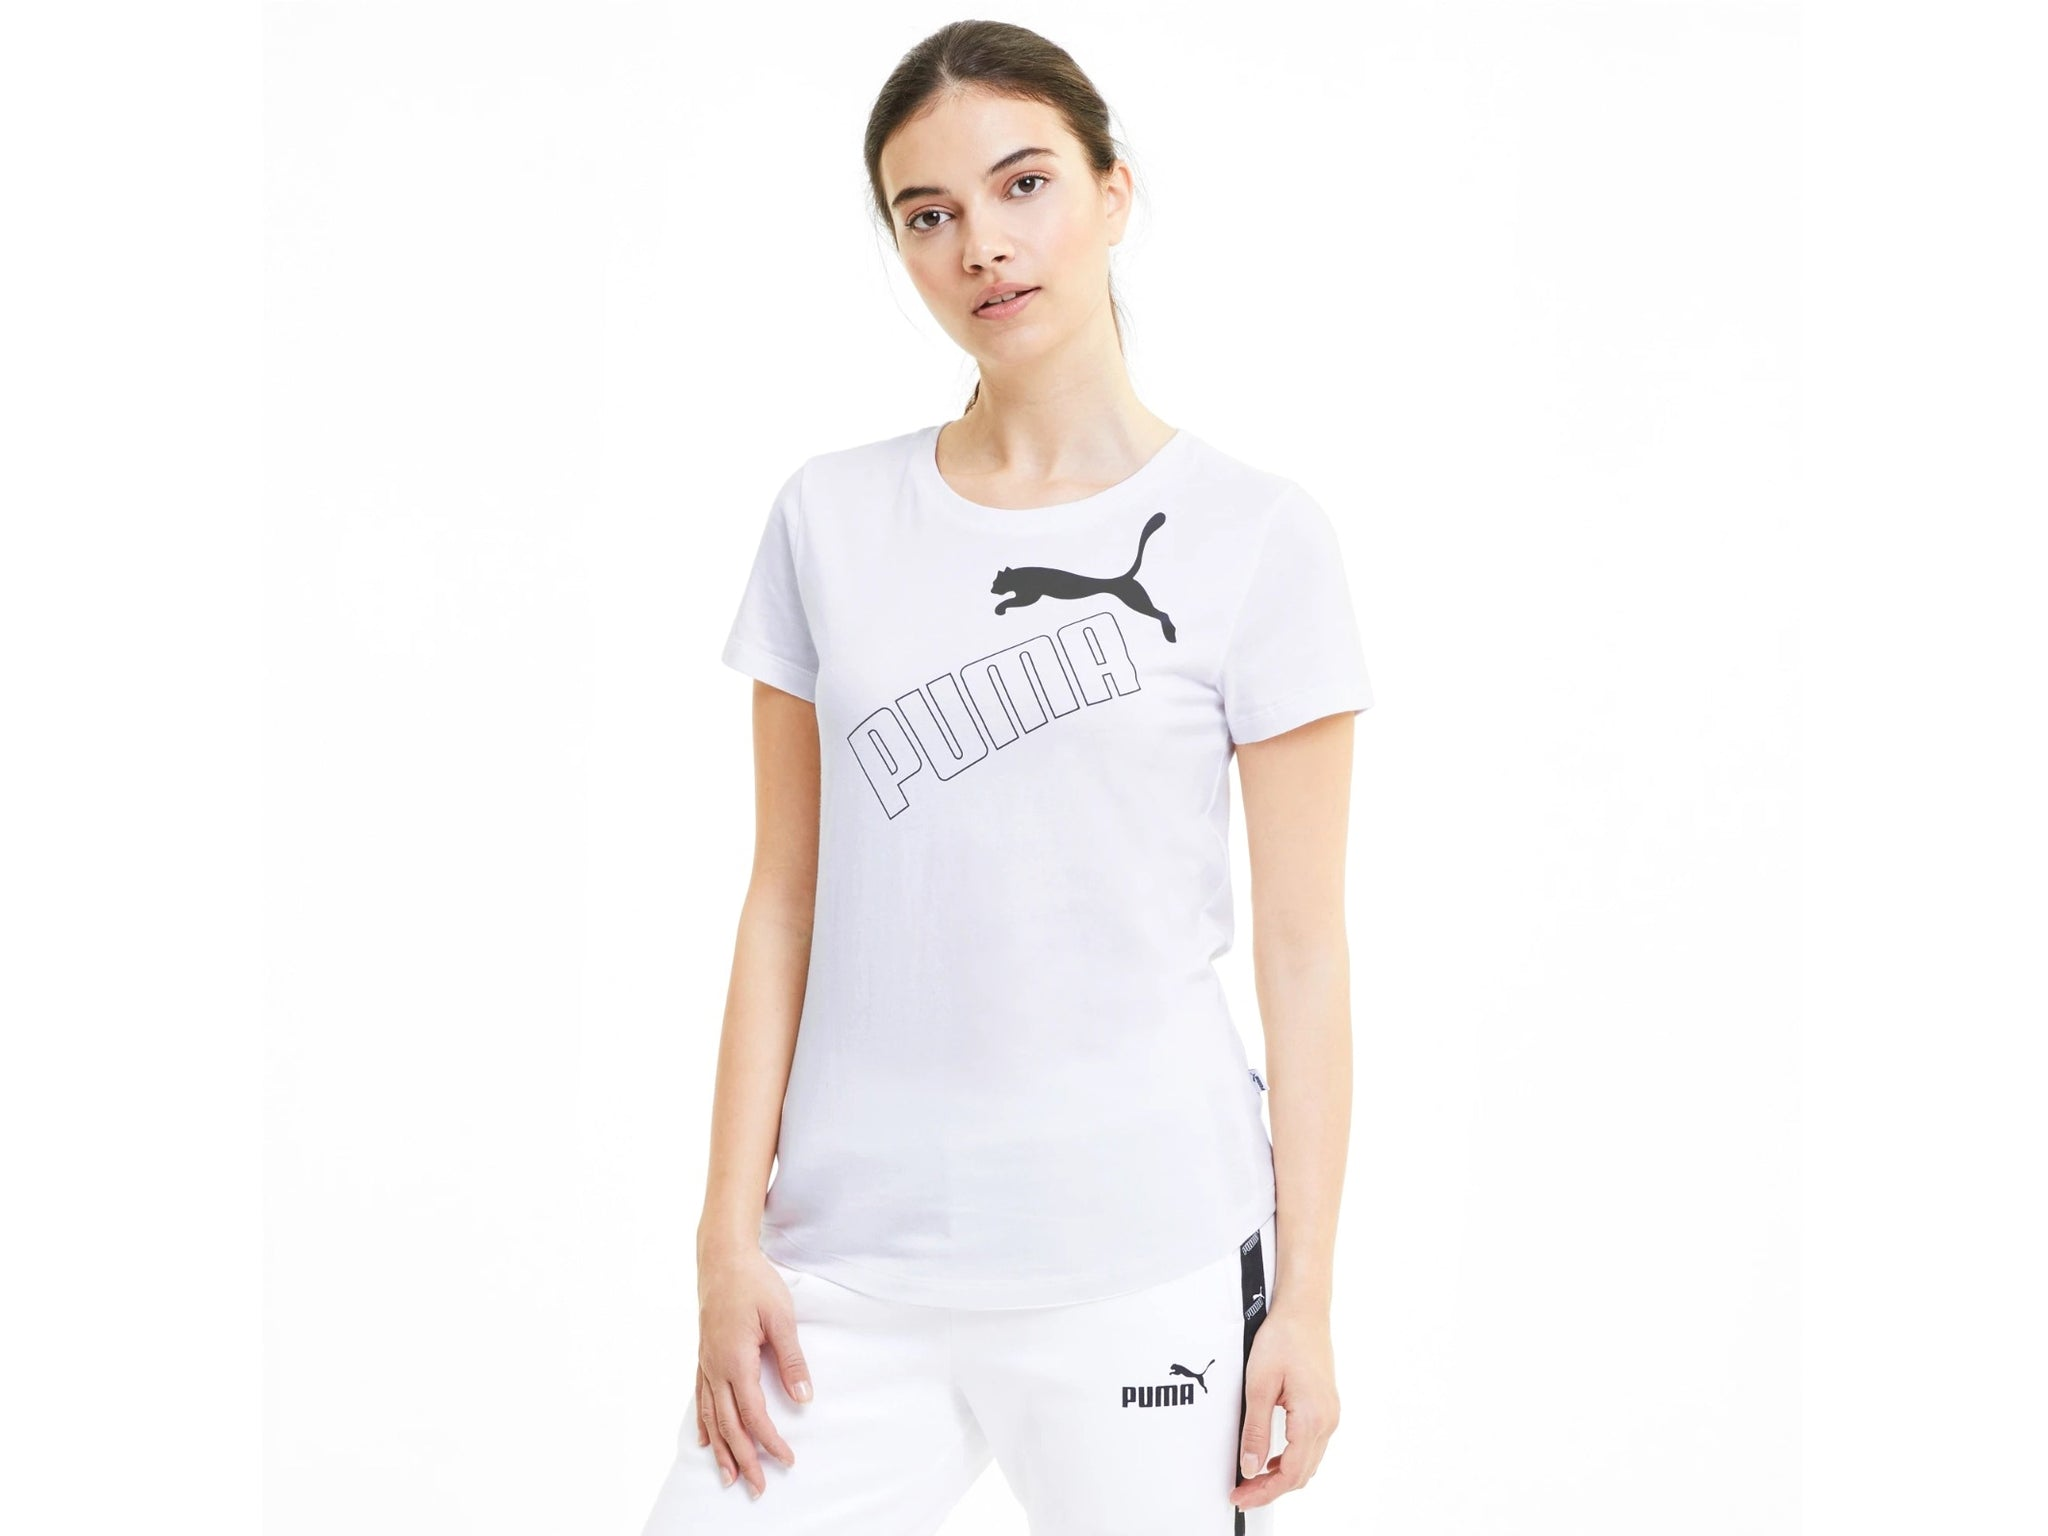 PUMA Amplified Graphic Tee T-Shirt Donna White 583607 02